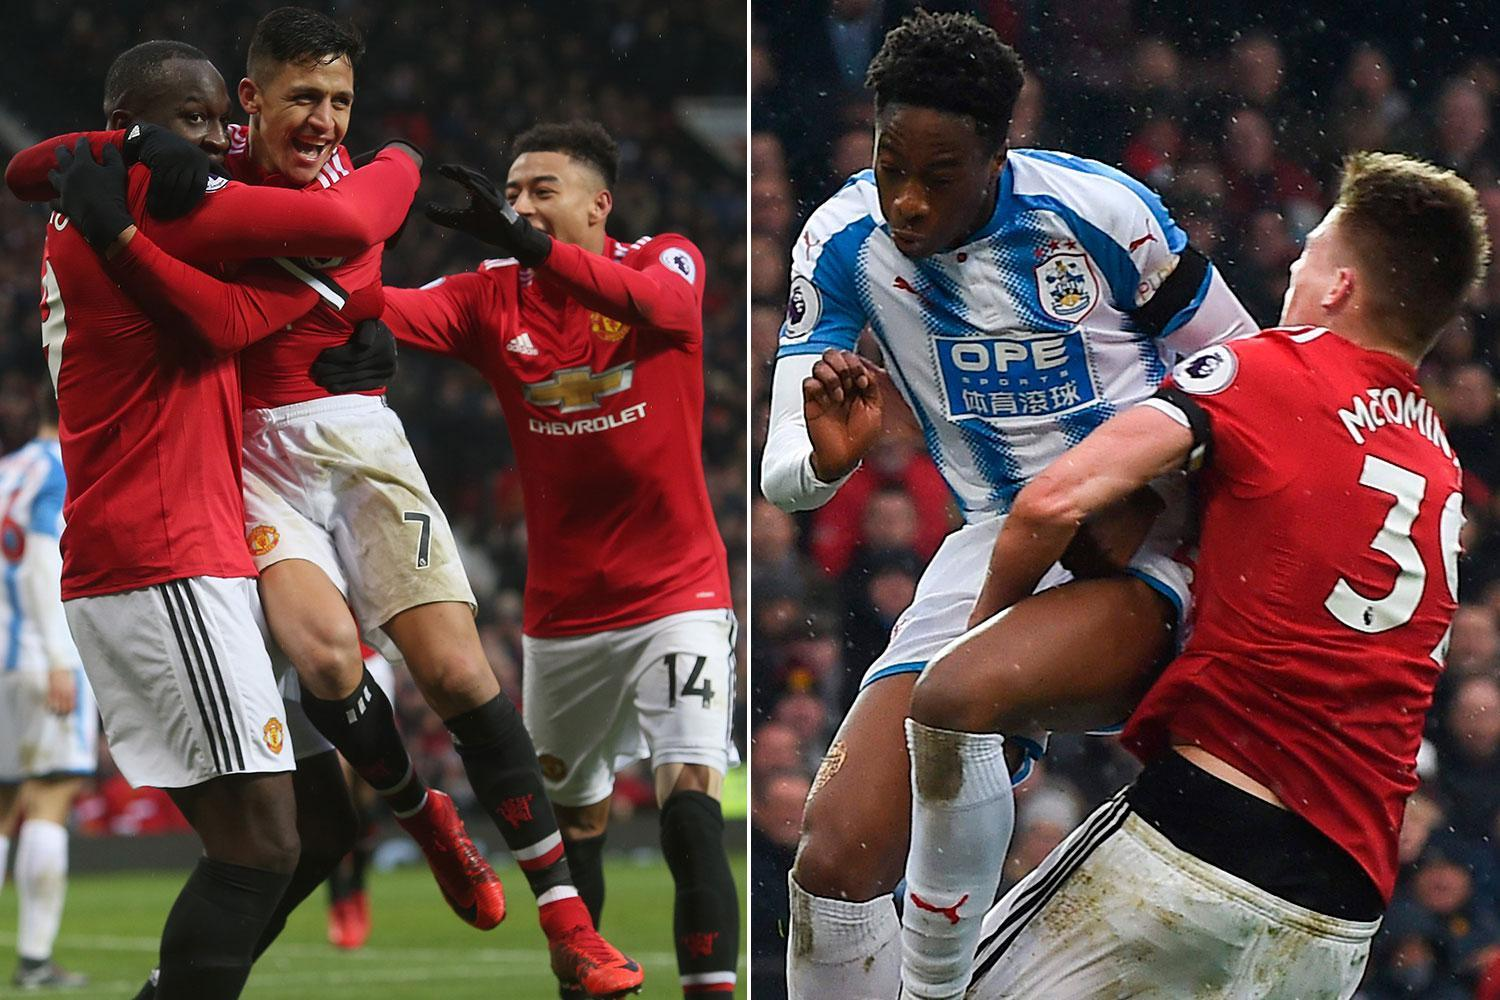 Man United 2 Huddersfield 0: Alexis Sanchez scores his first goal for Red Devils as Huddersfield's relegation fears increase